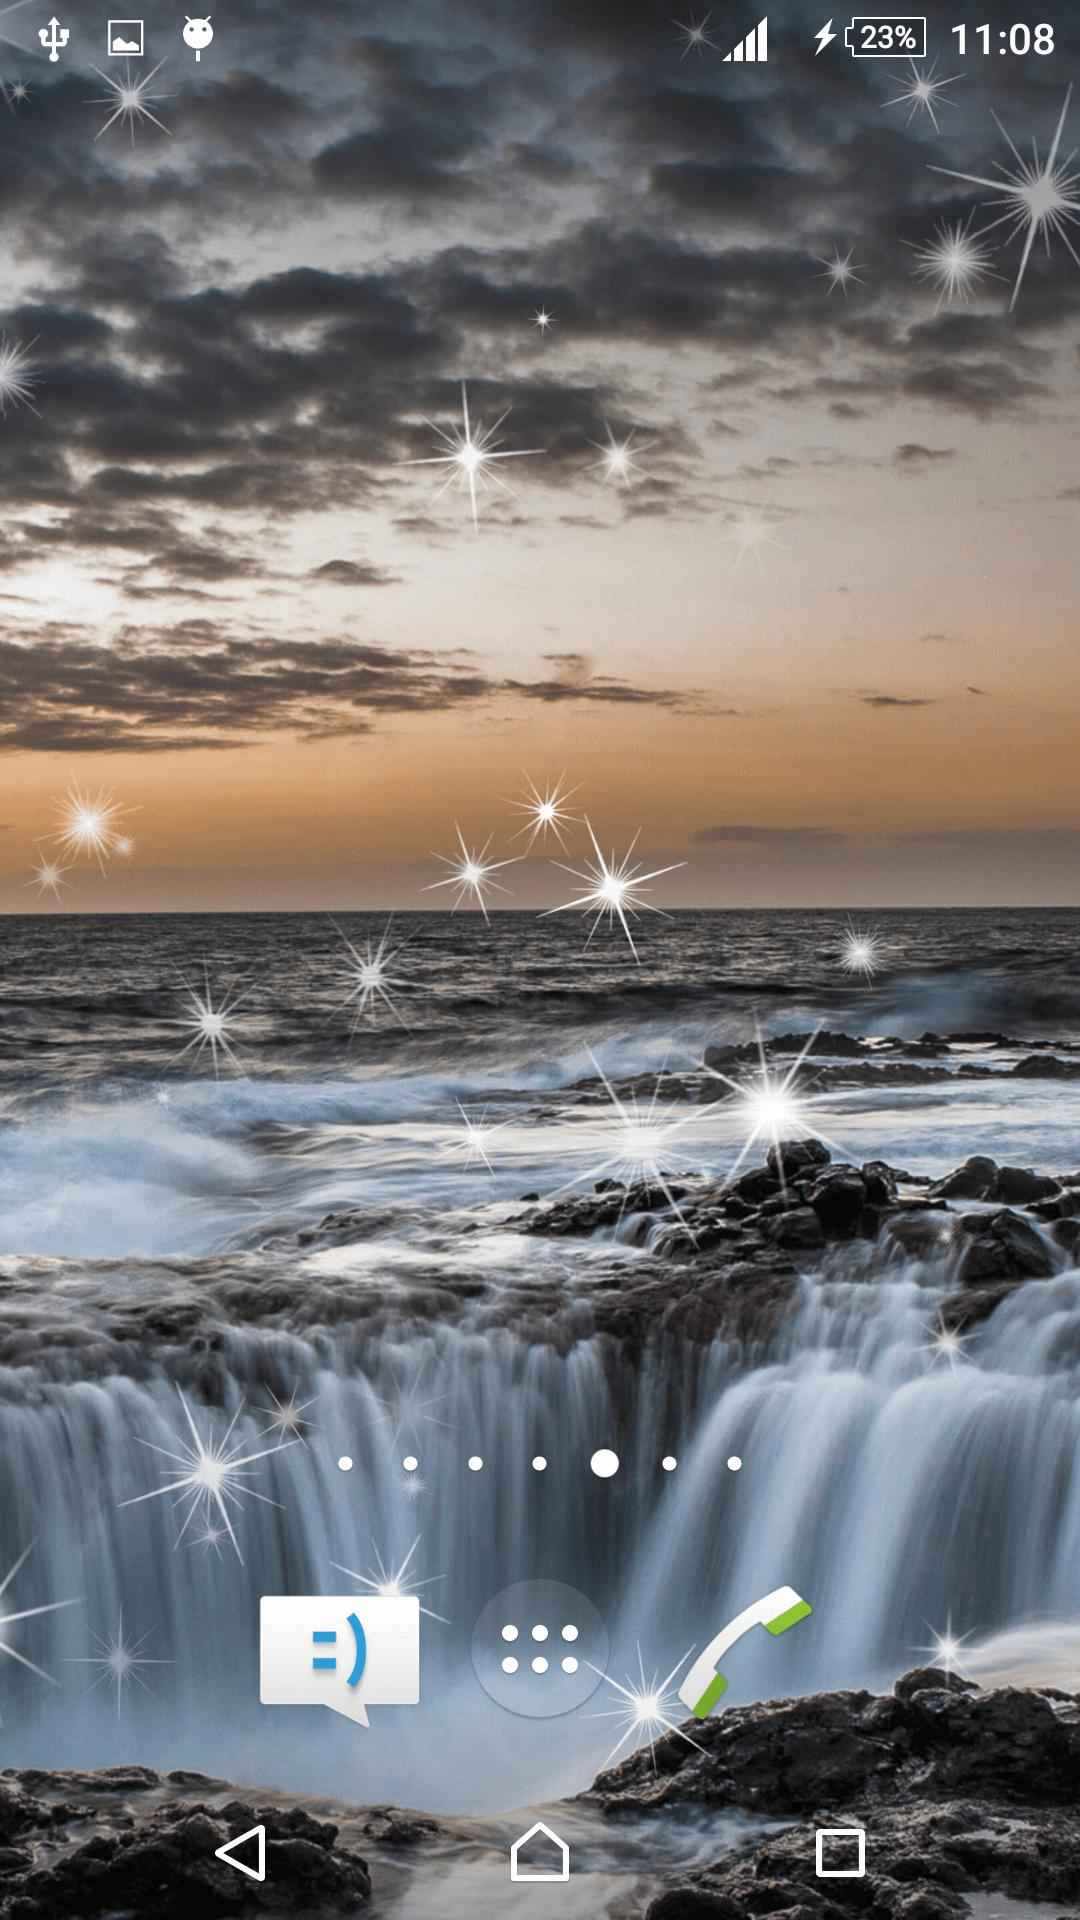 Waterfall Live Wallpaper screenshot 2